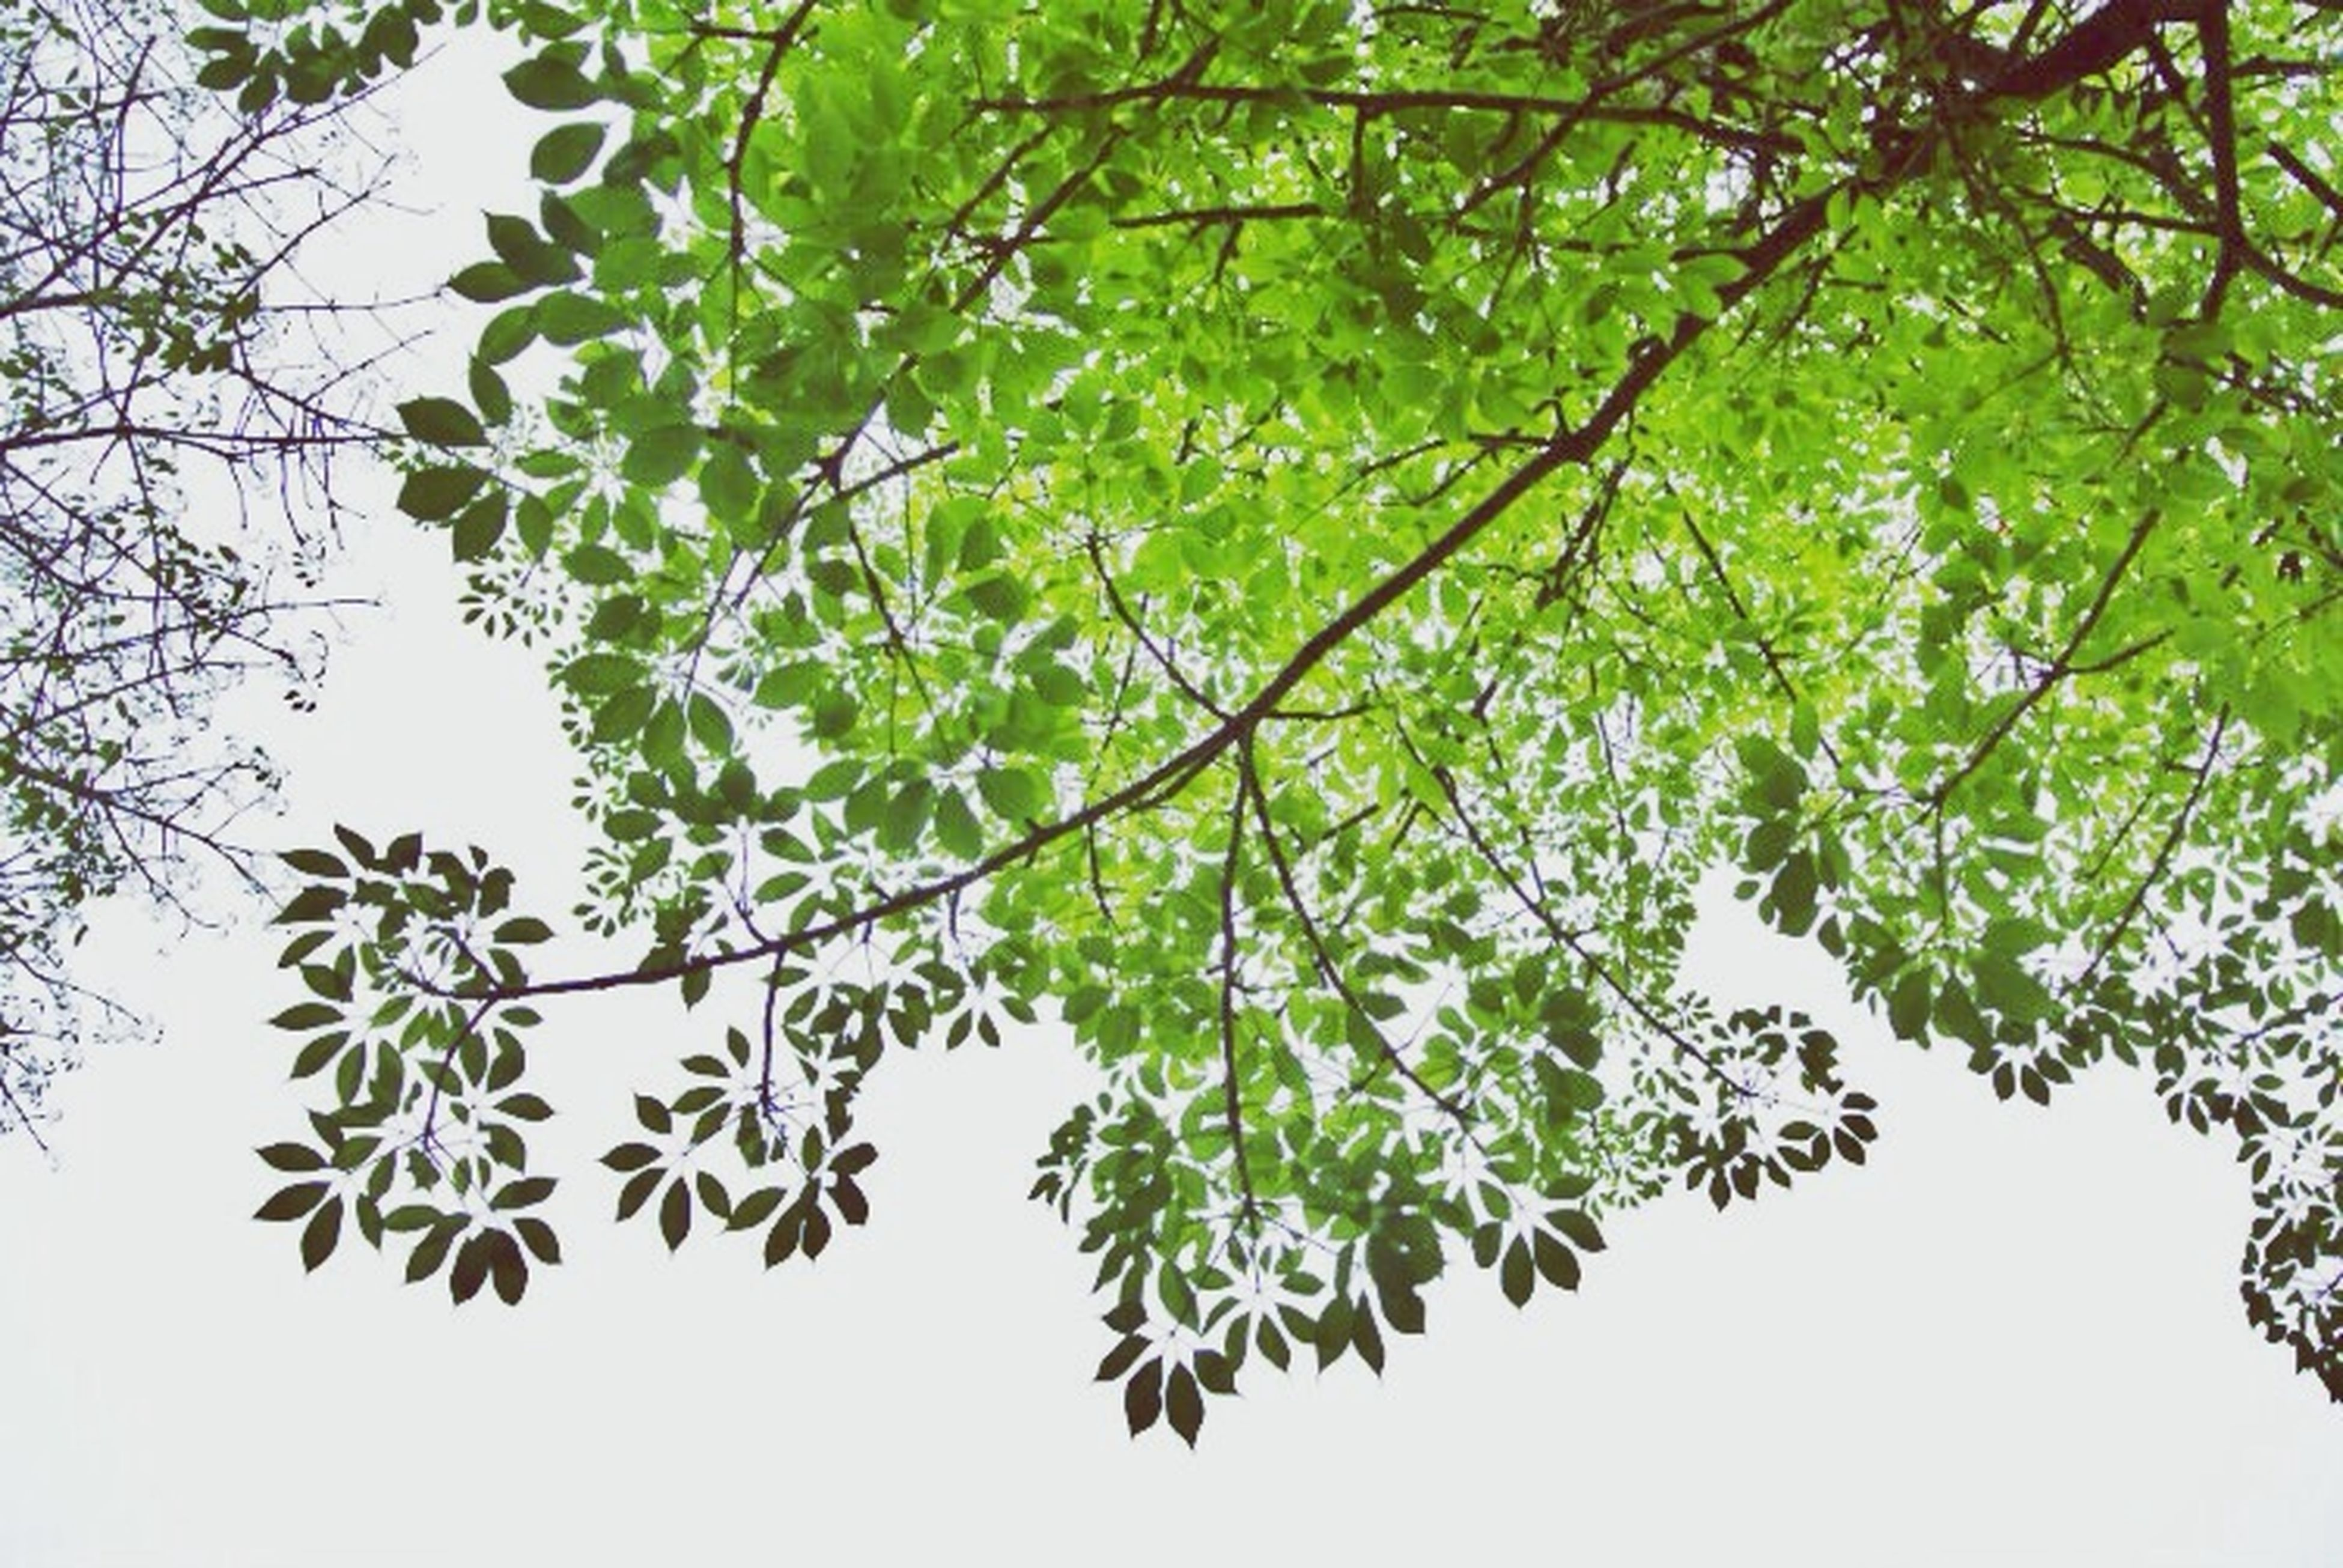 tree, branch, growth, leaf, low angle view, green color, nature, beauty in nature, freshness, tranquility, clear sky, sky, plant, day, outdoors, no people, green, twig, close-up, sunlight